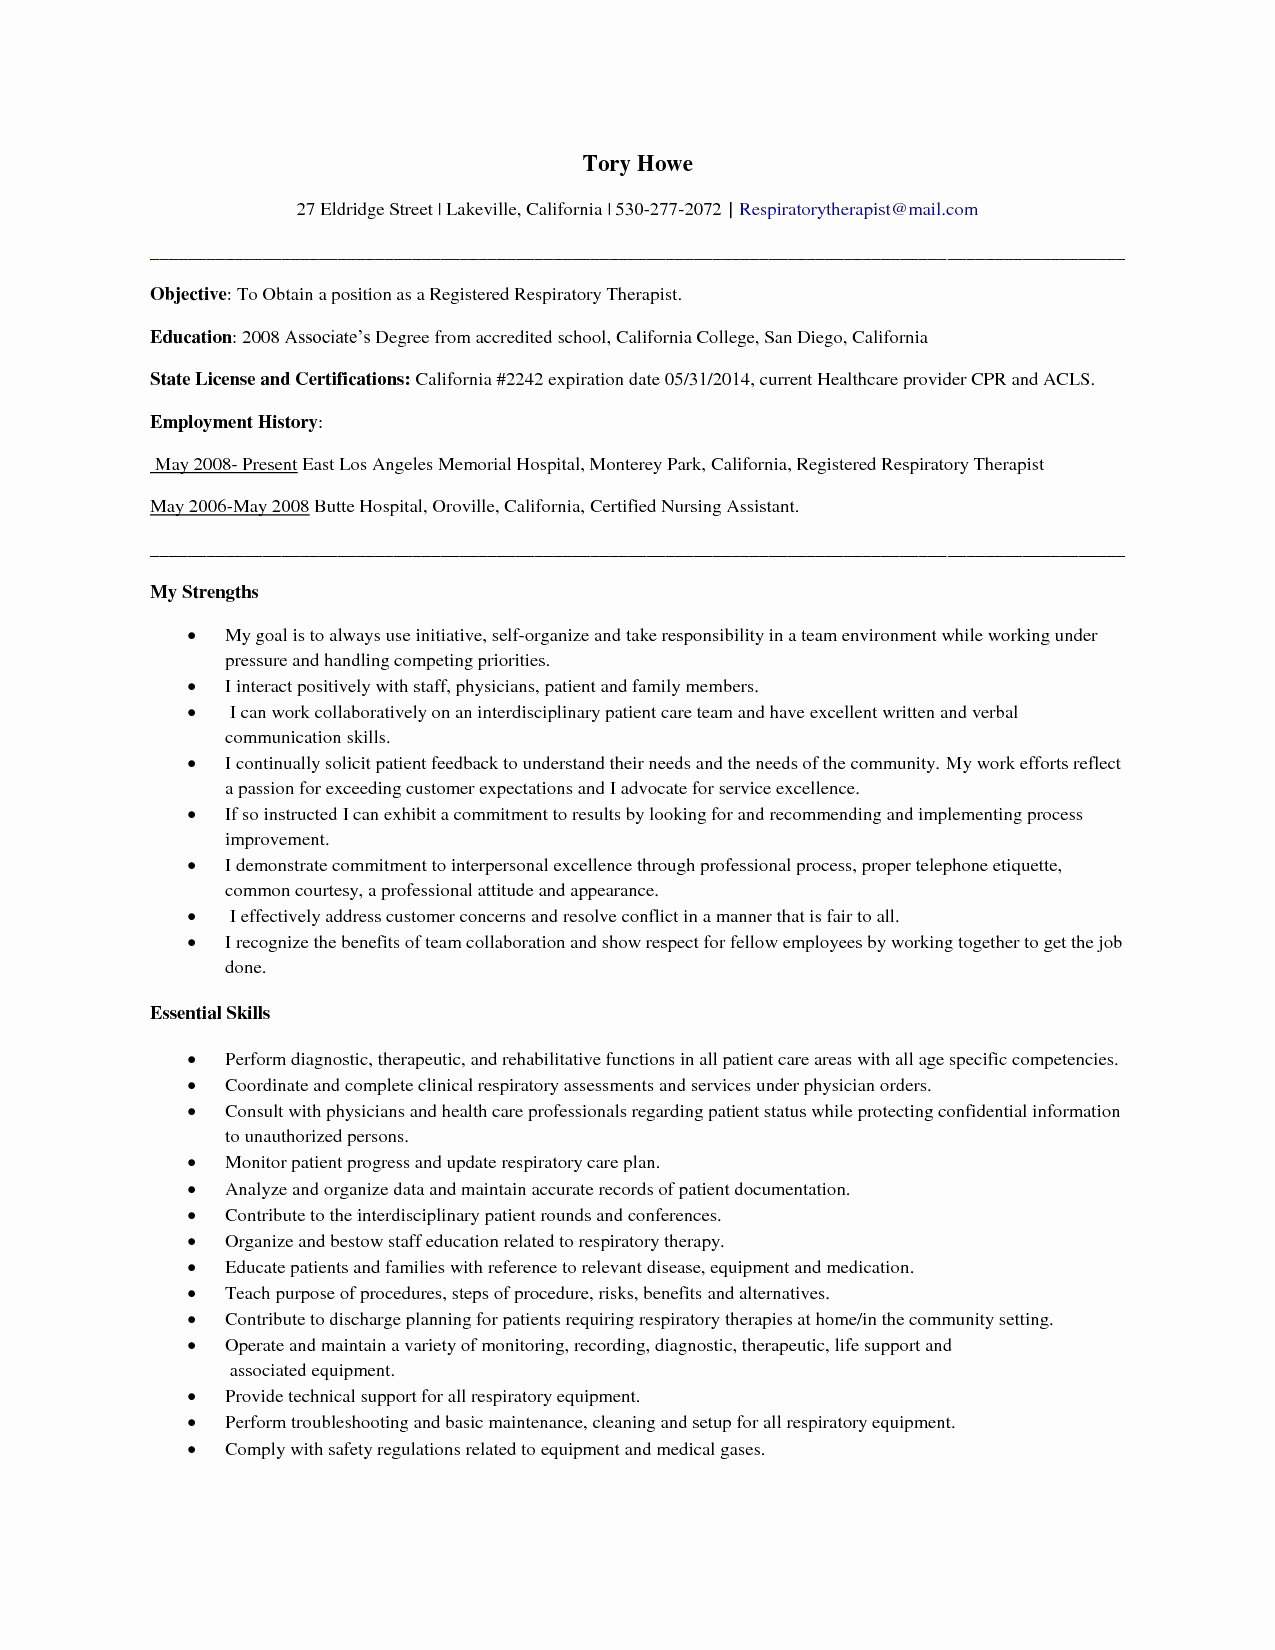 Respiratory therapy Cover Letter Template - 50 Awesome Respiratory therapist Resume Graphics